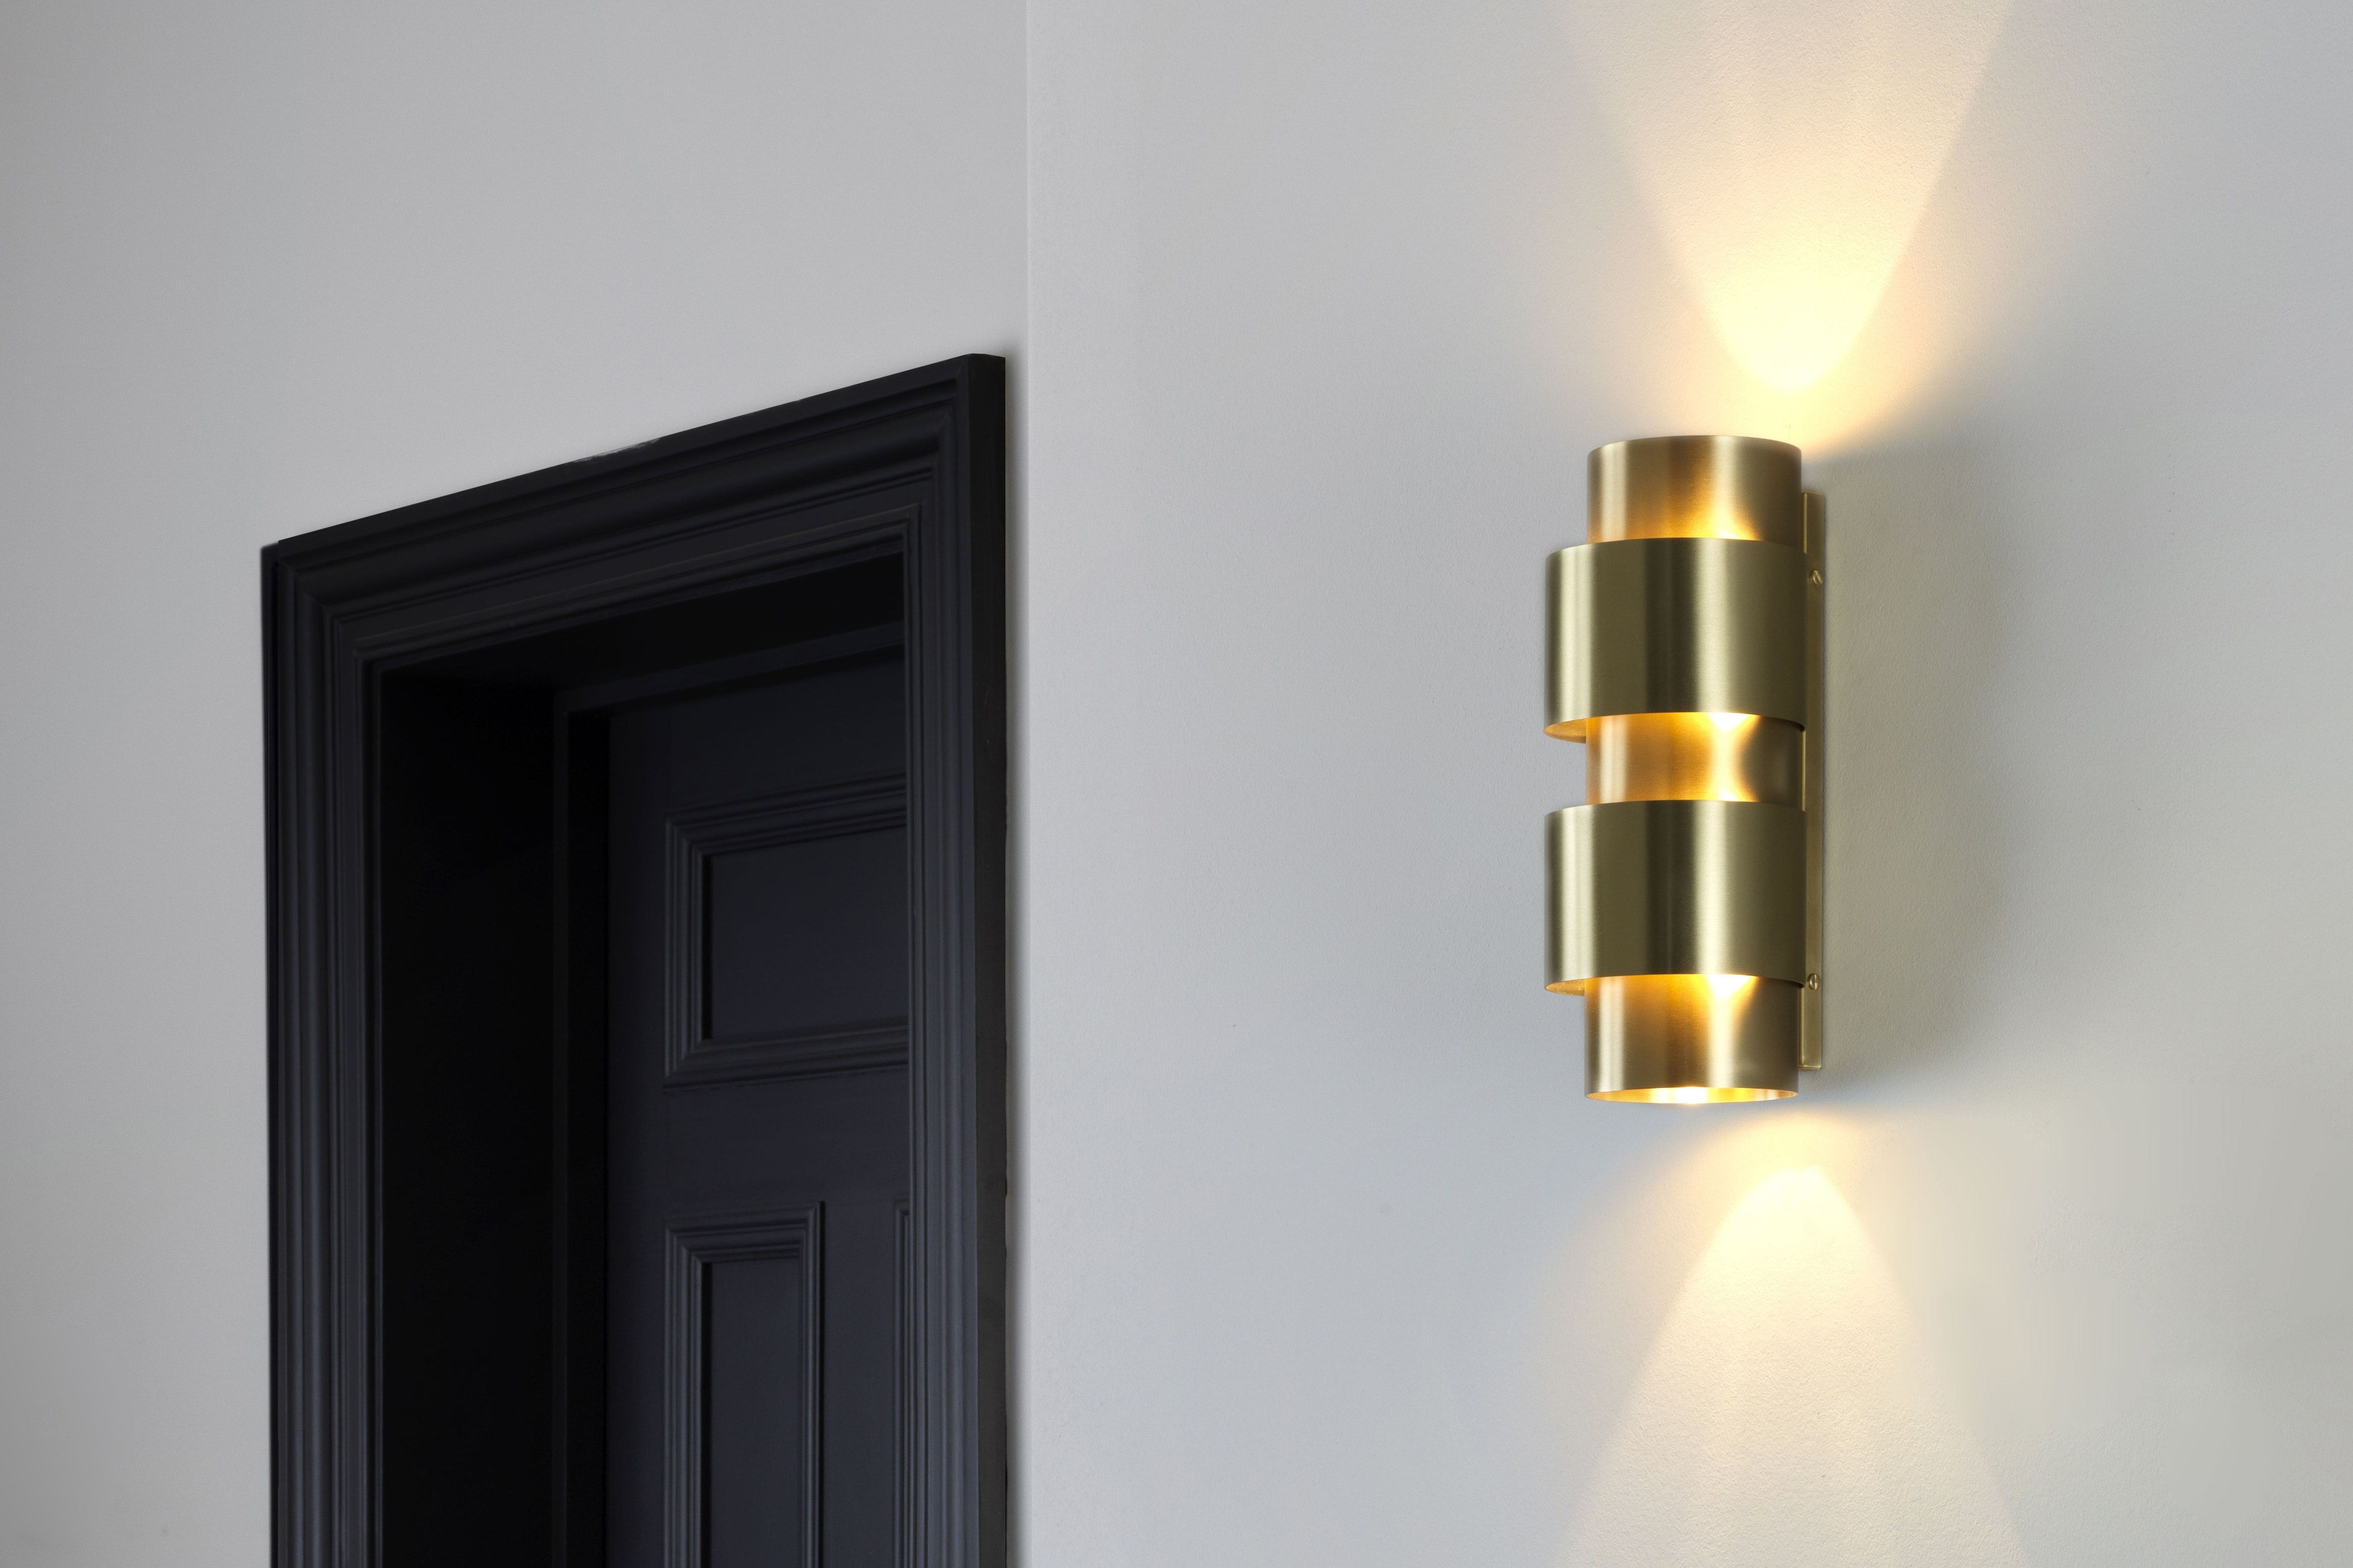 Ring Wall Light By Cto Lighting Now Available At Haute Living Wall Lights Wall Lamp Wall